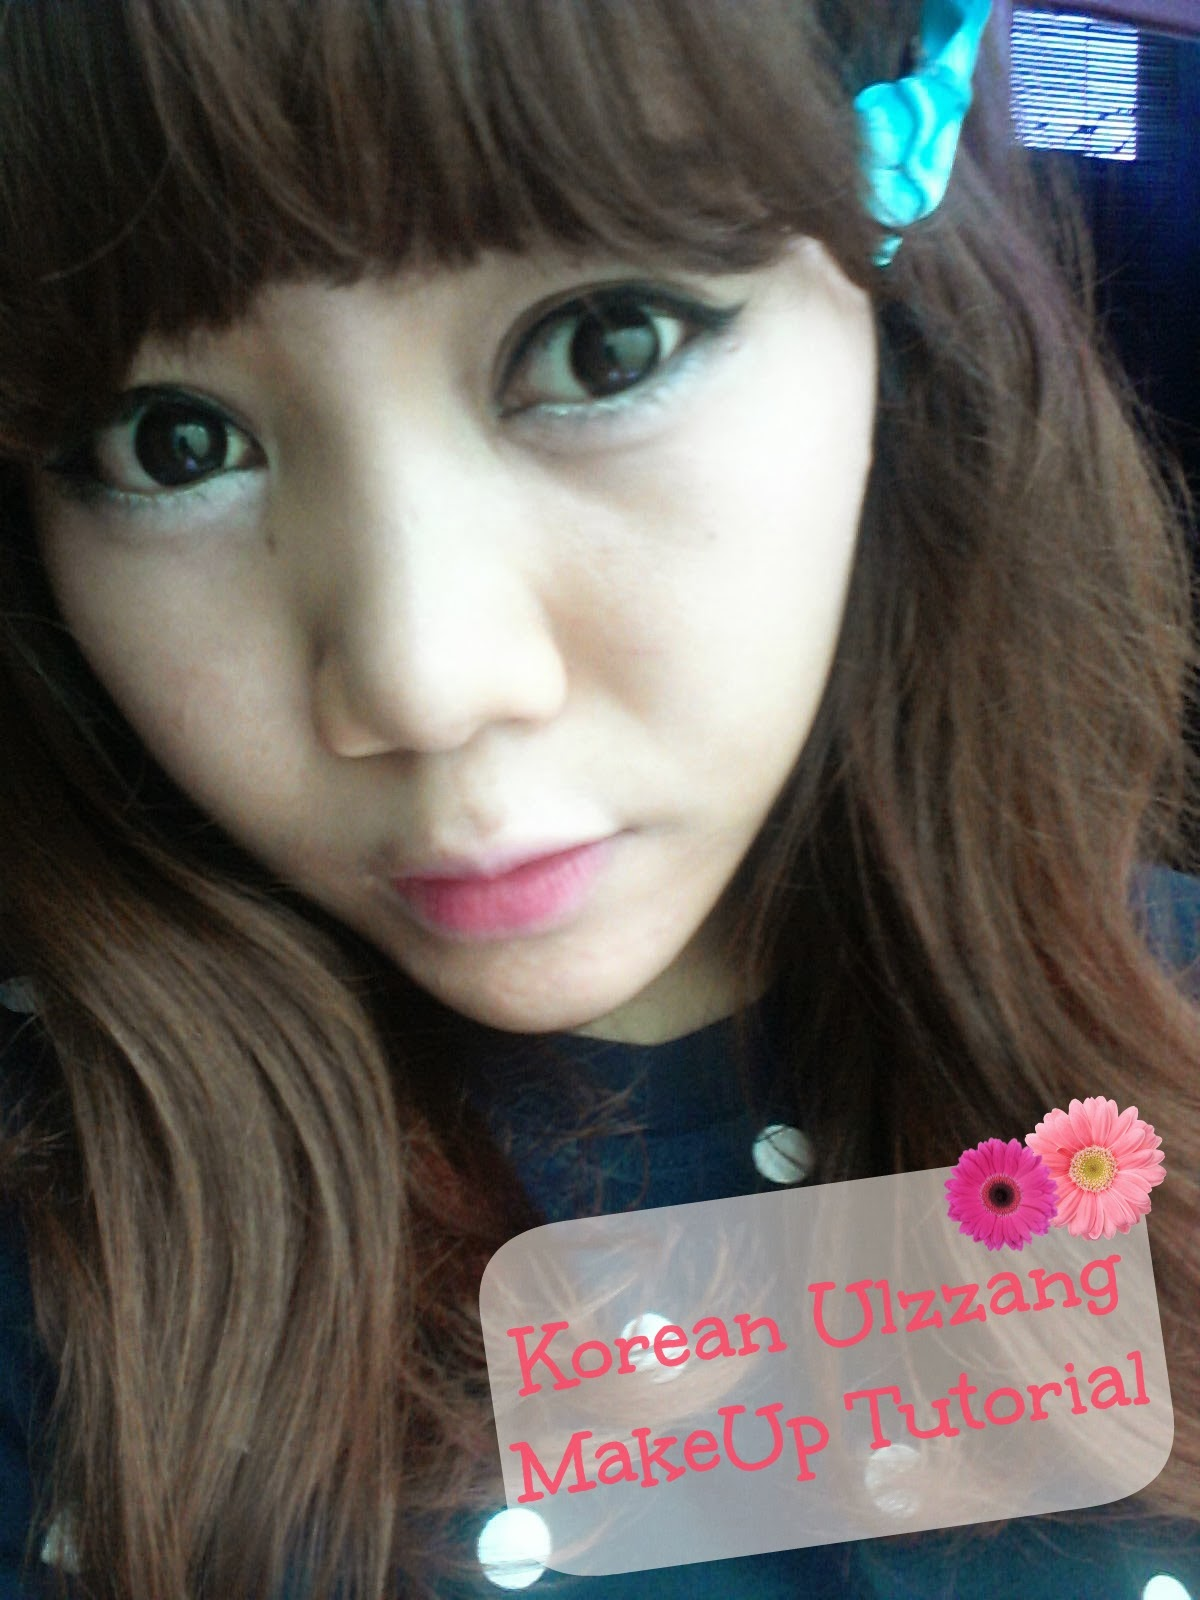 Makeup no makeup korean